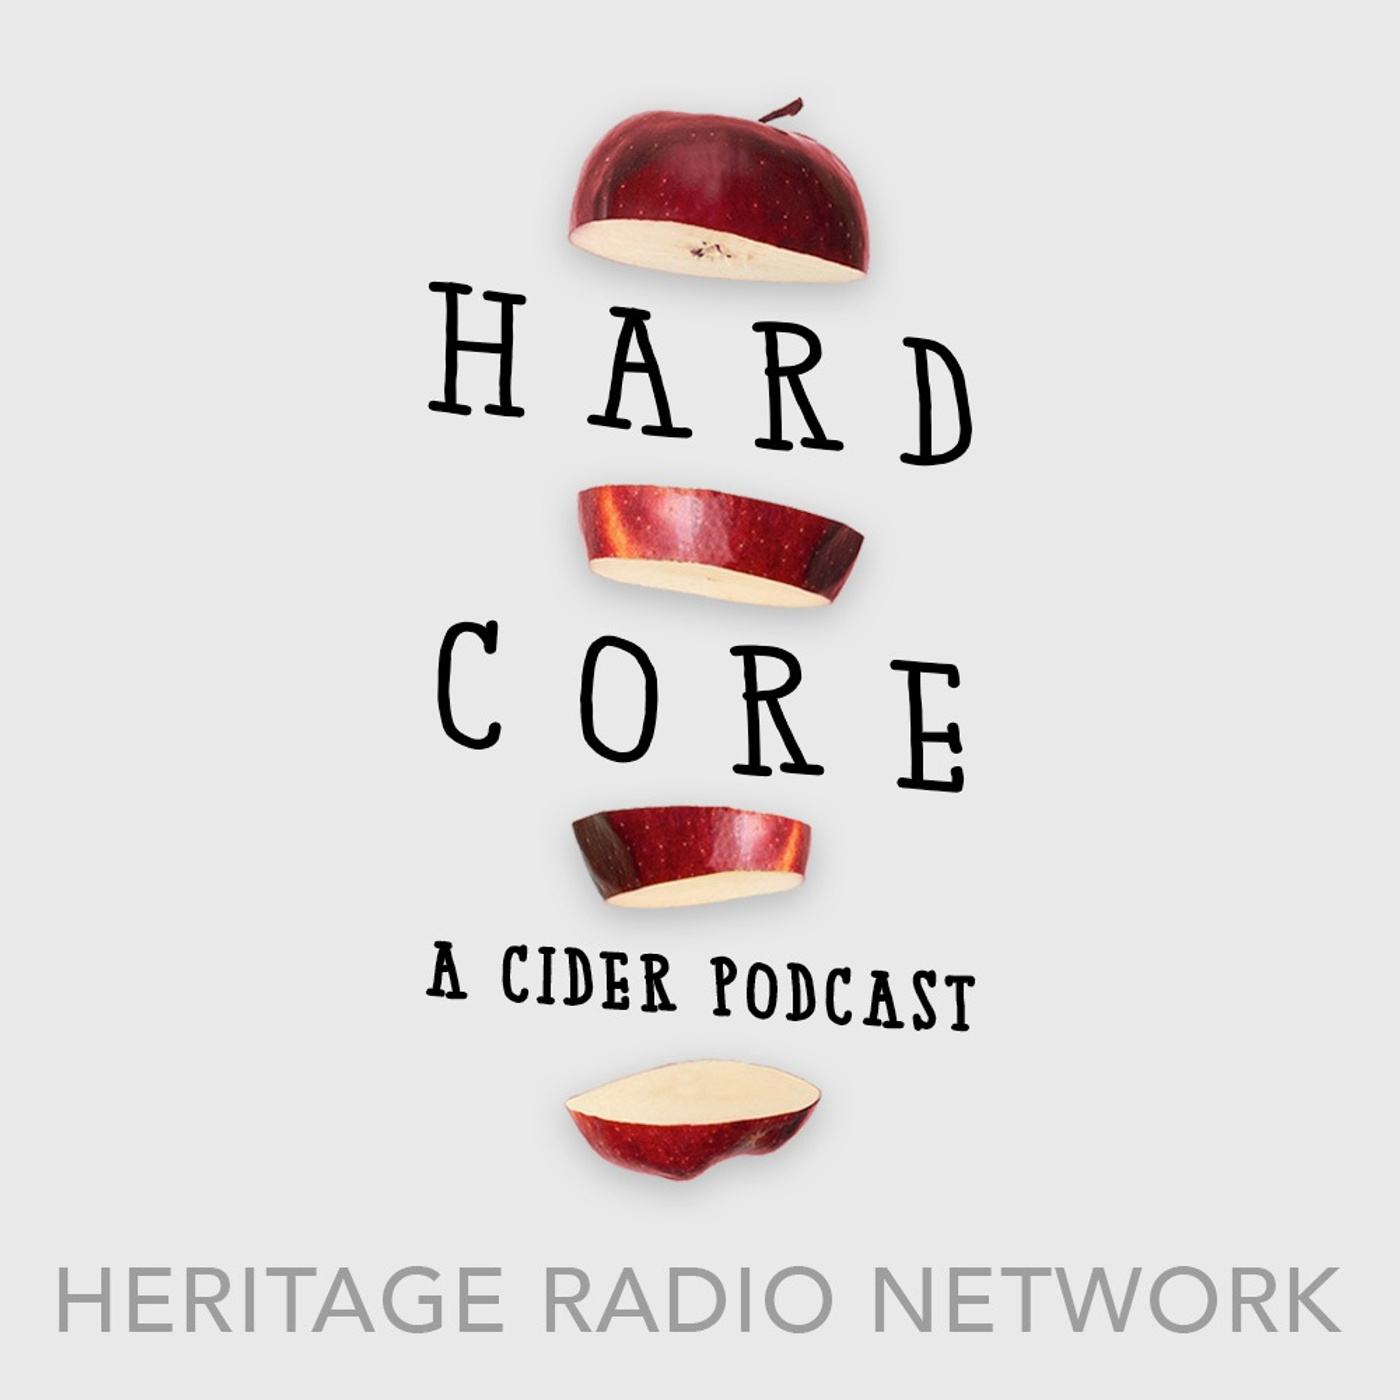 Introducing Hard Core - A Cider Series from Heritage Radio Network